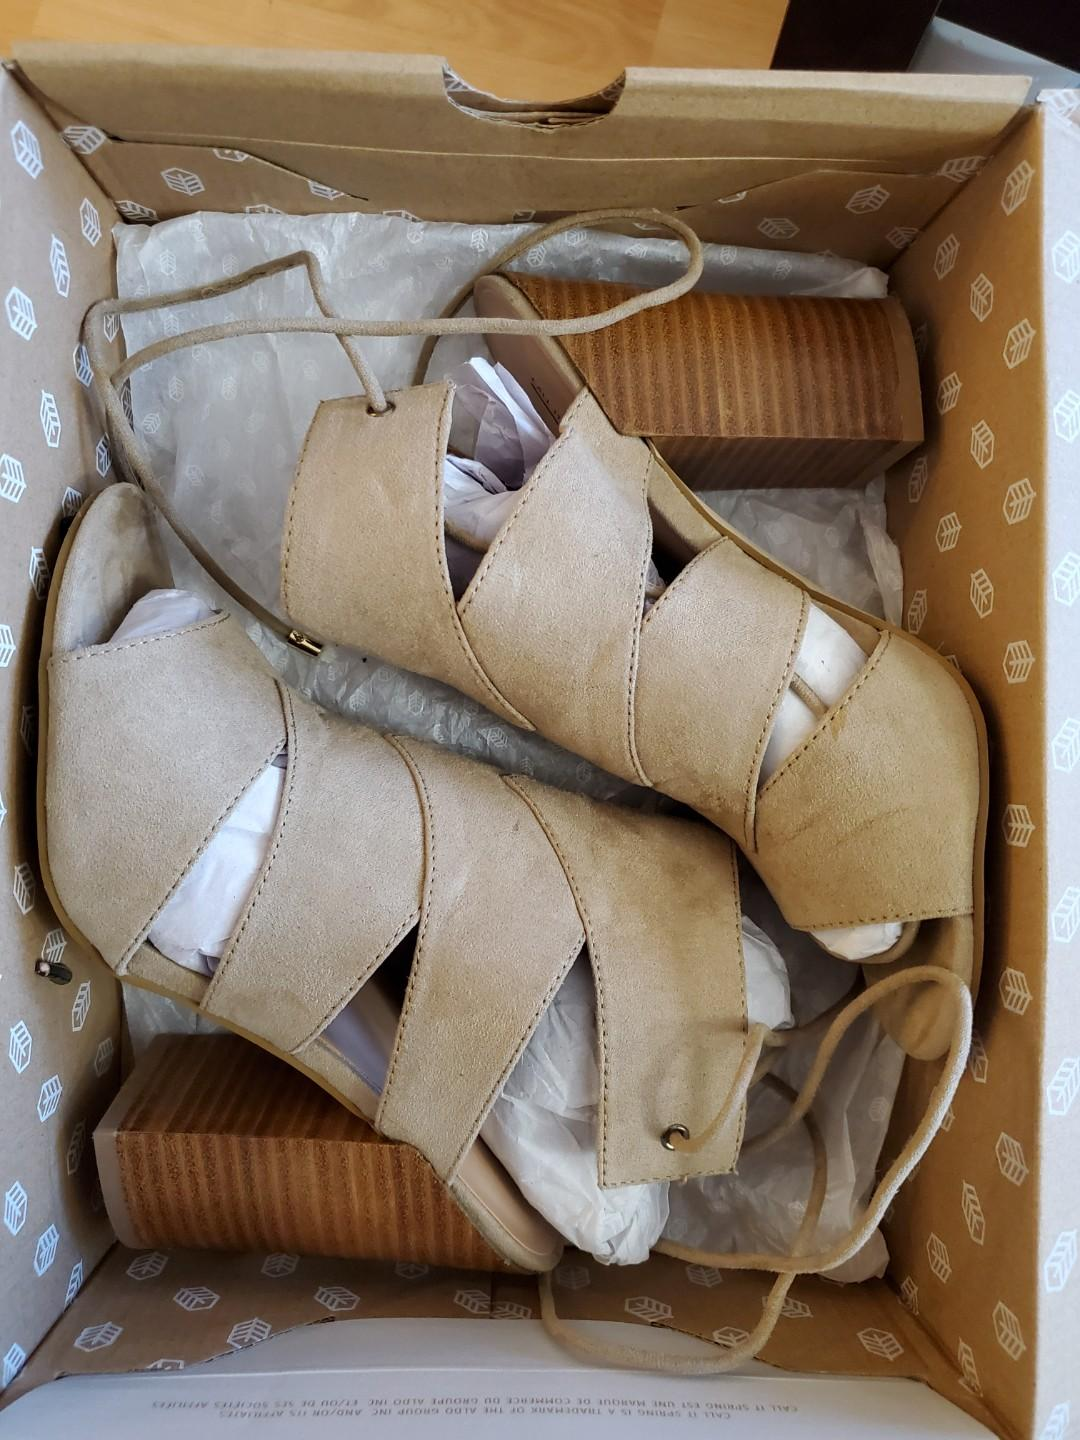 Asadolla beige suede heels. CALL IT SPRING. Worn once.